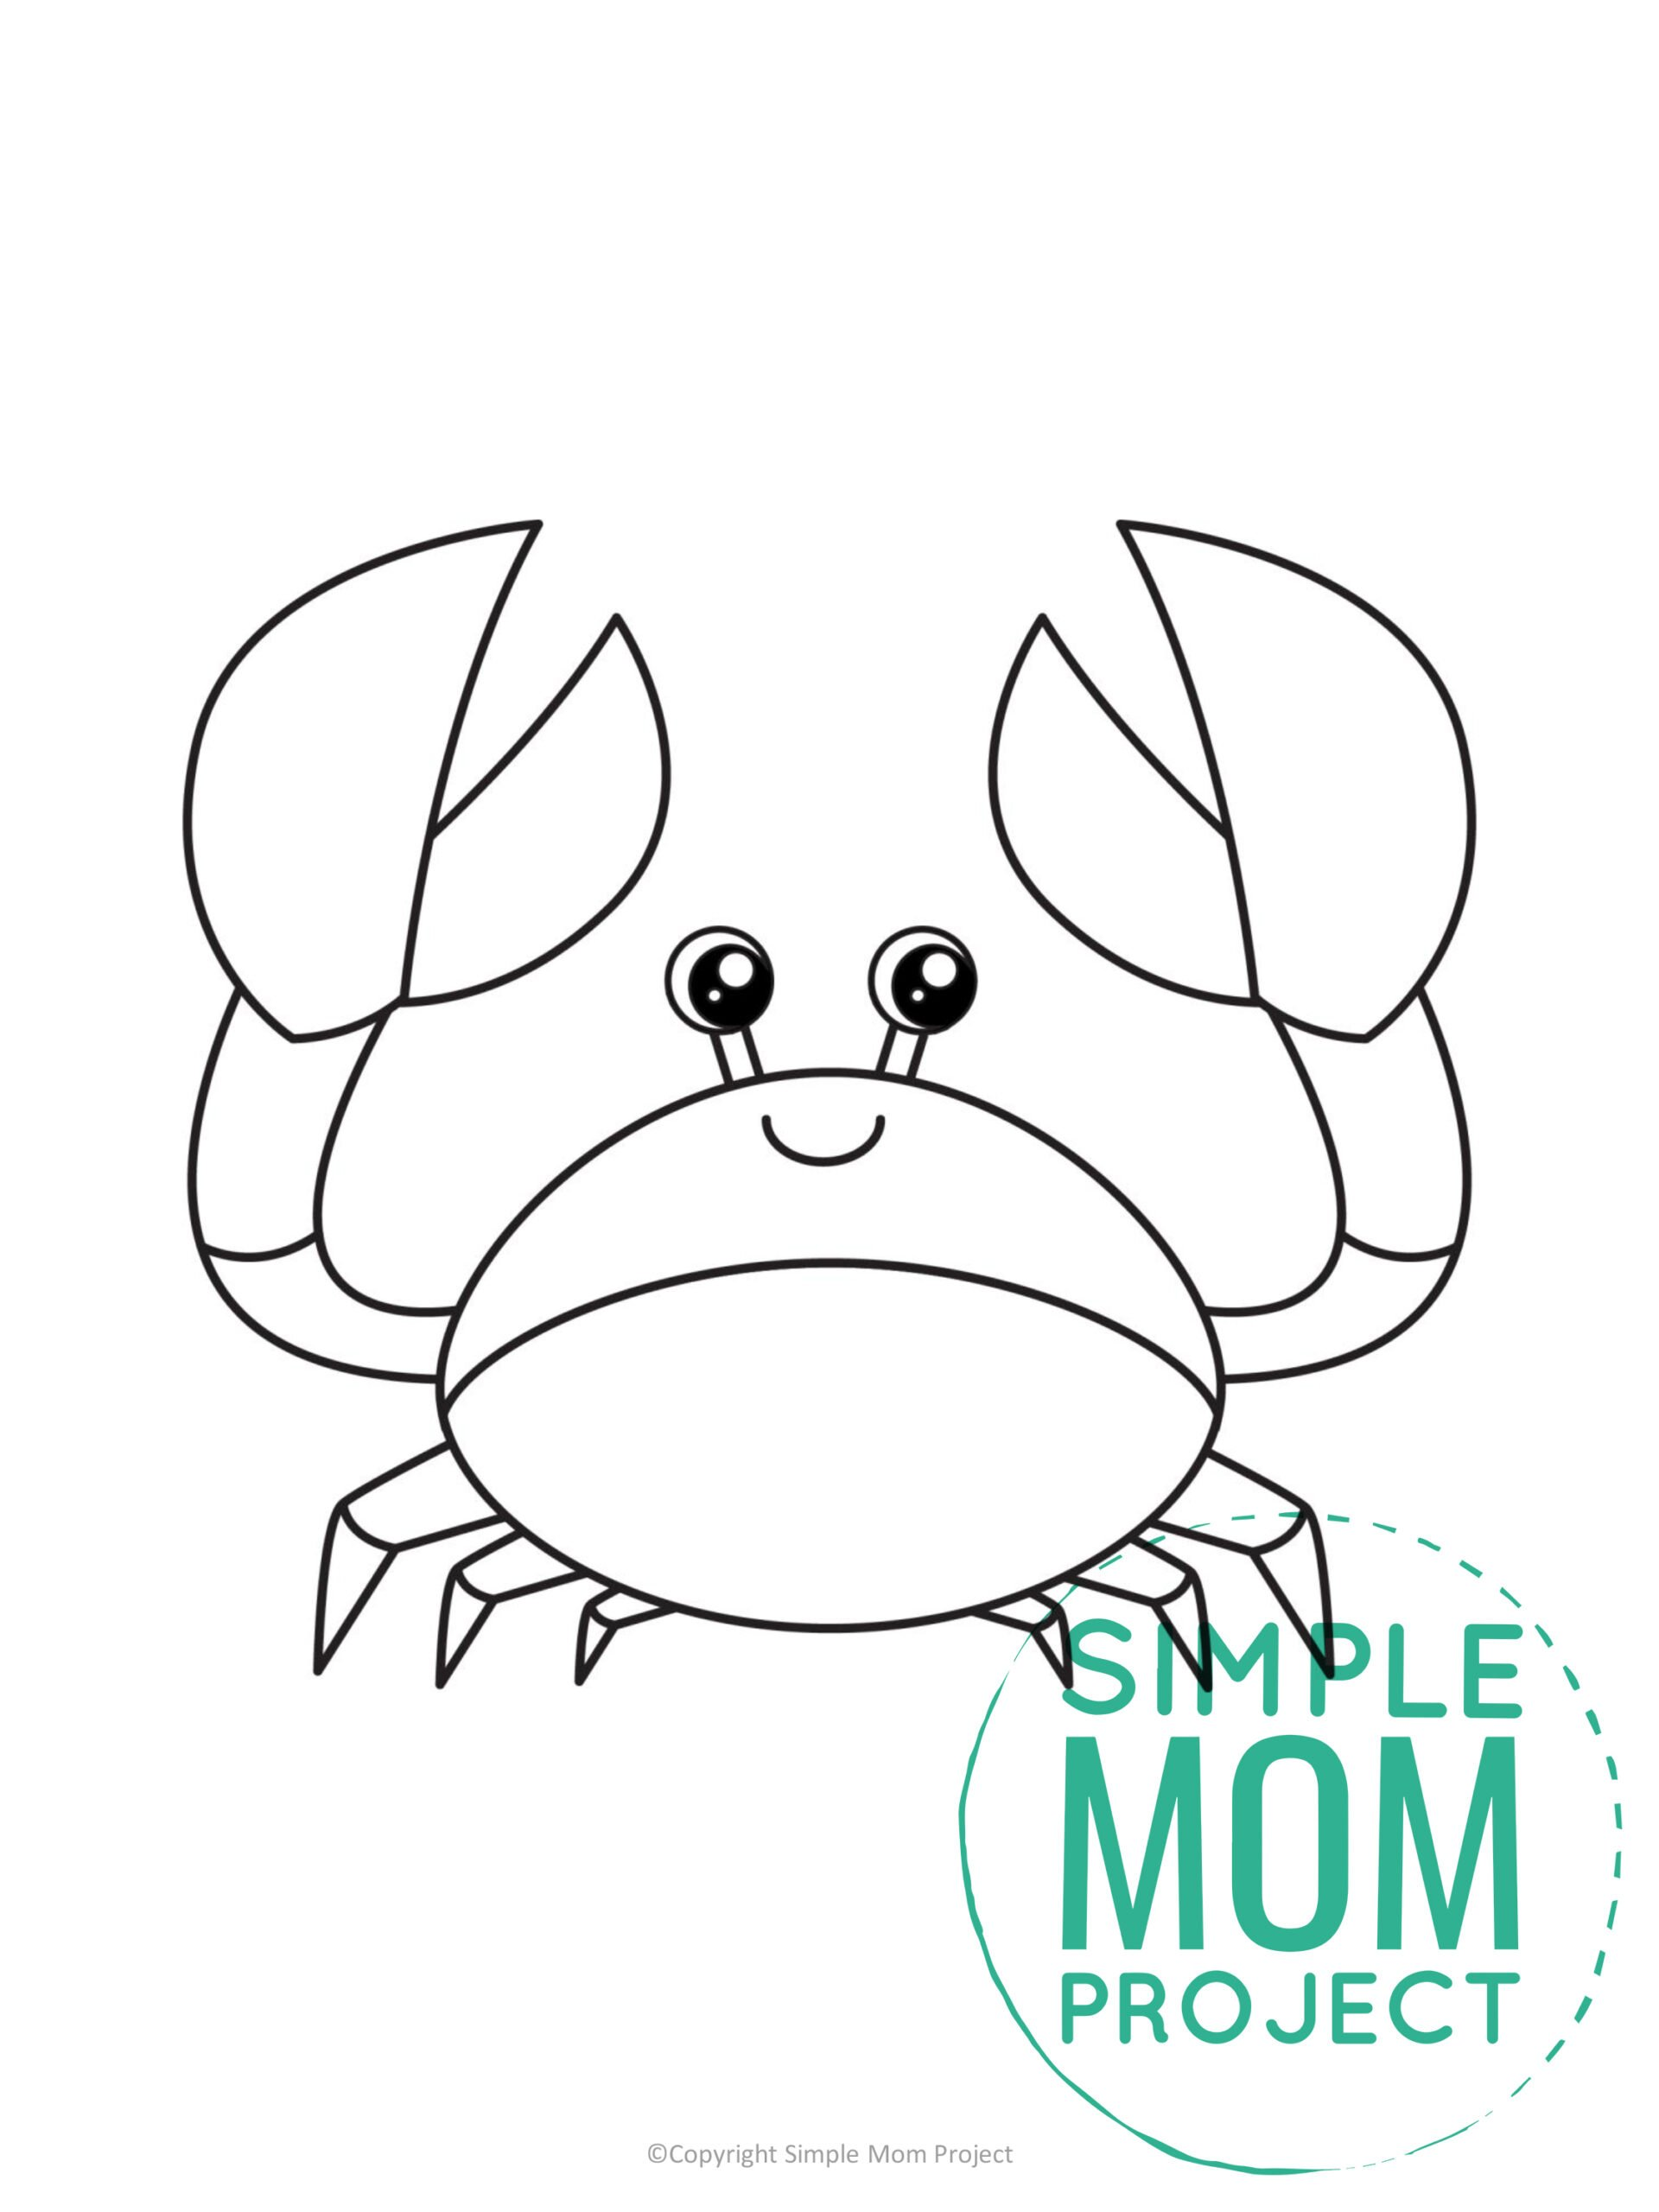 Free Printable Summer Beach Crab Template for Kids, preschooler and toddler